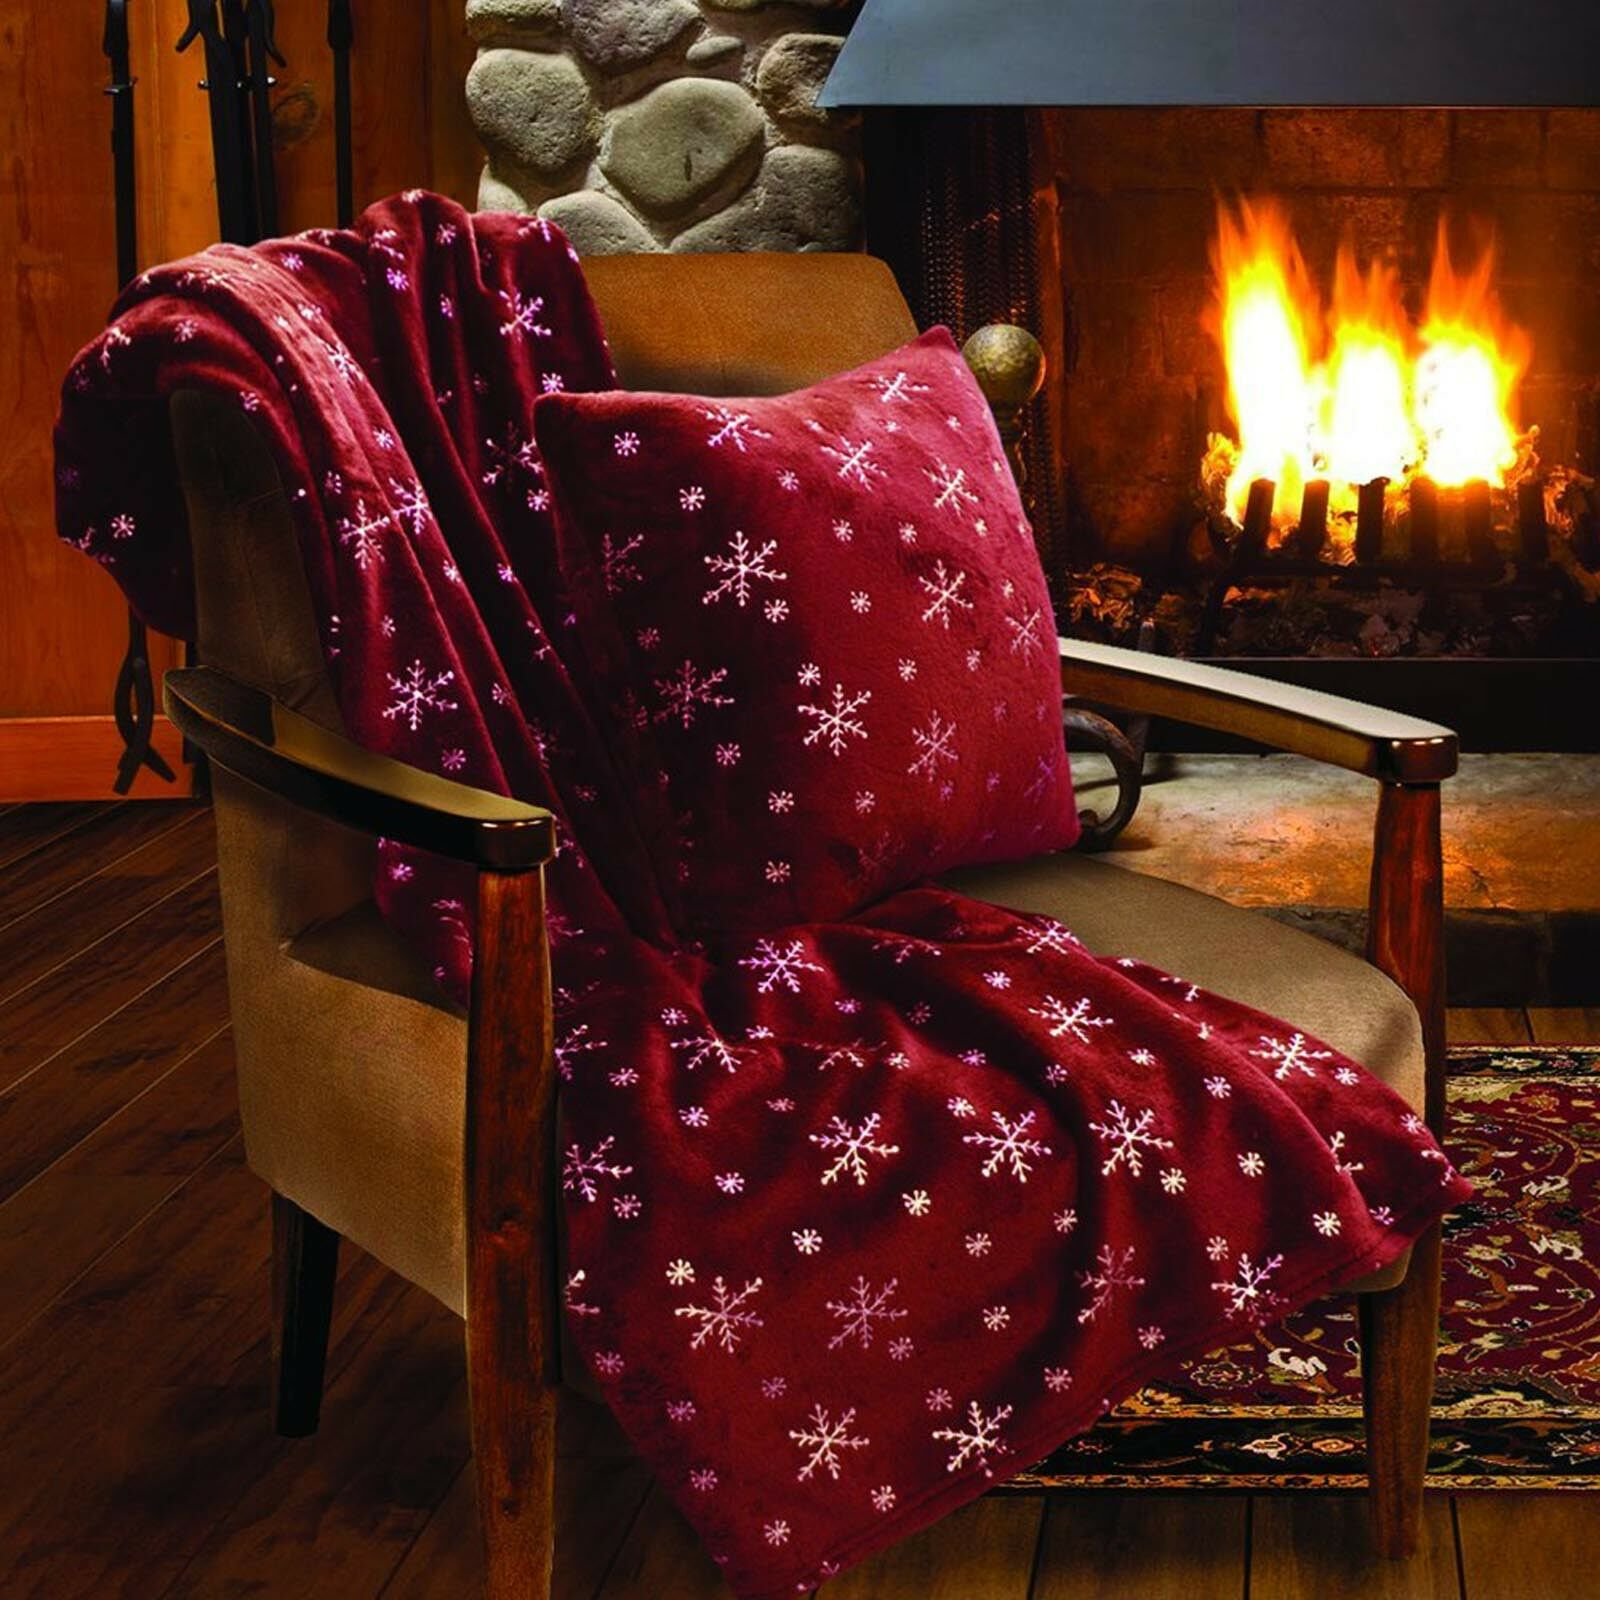 Wrinkle Resistant Soft Throw Blanket for Christmas, Suitable for Chair or Bed